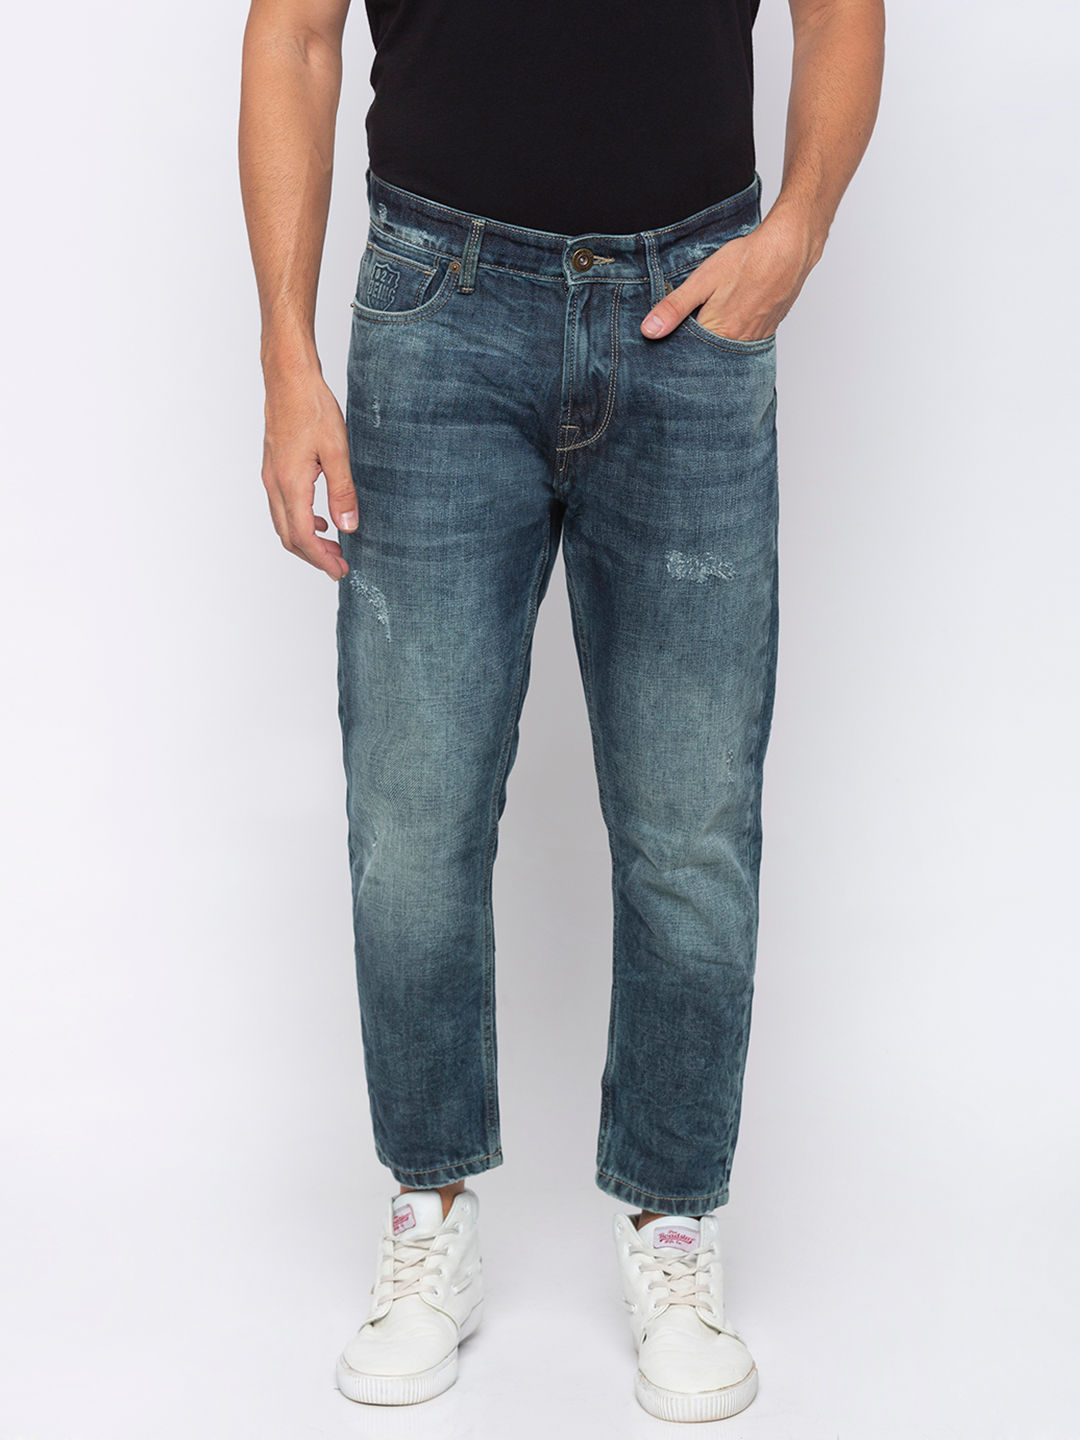 Men's blue Tapered Cropped Washed Jeans